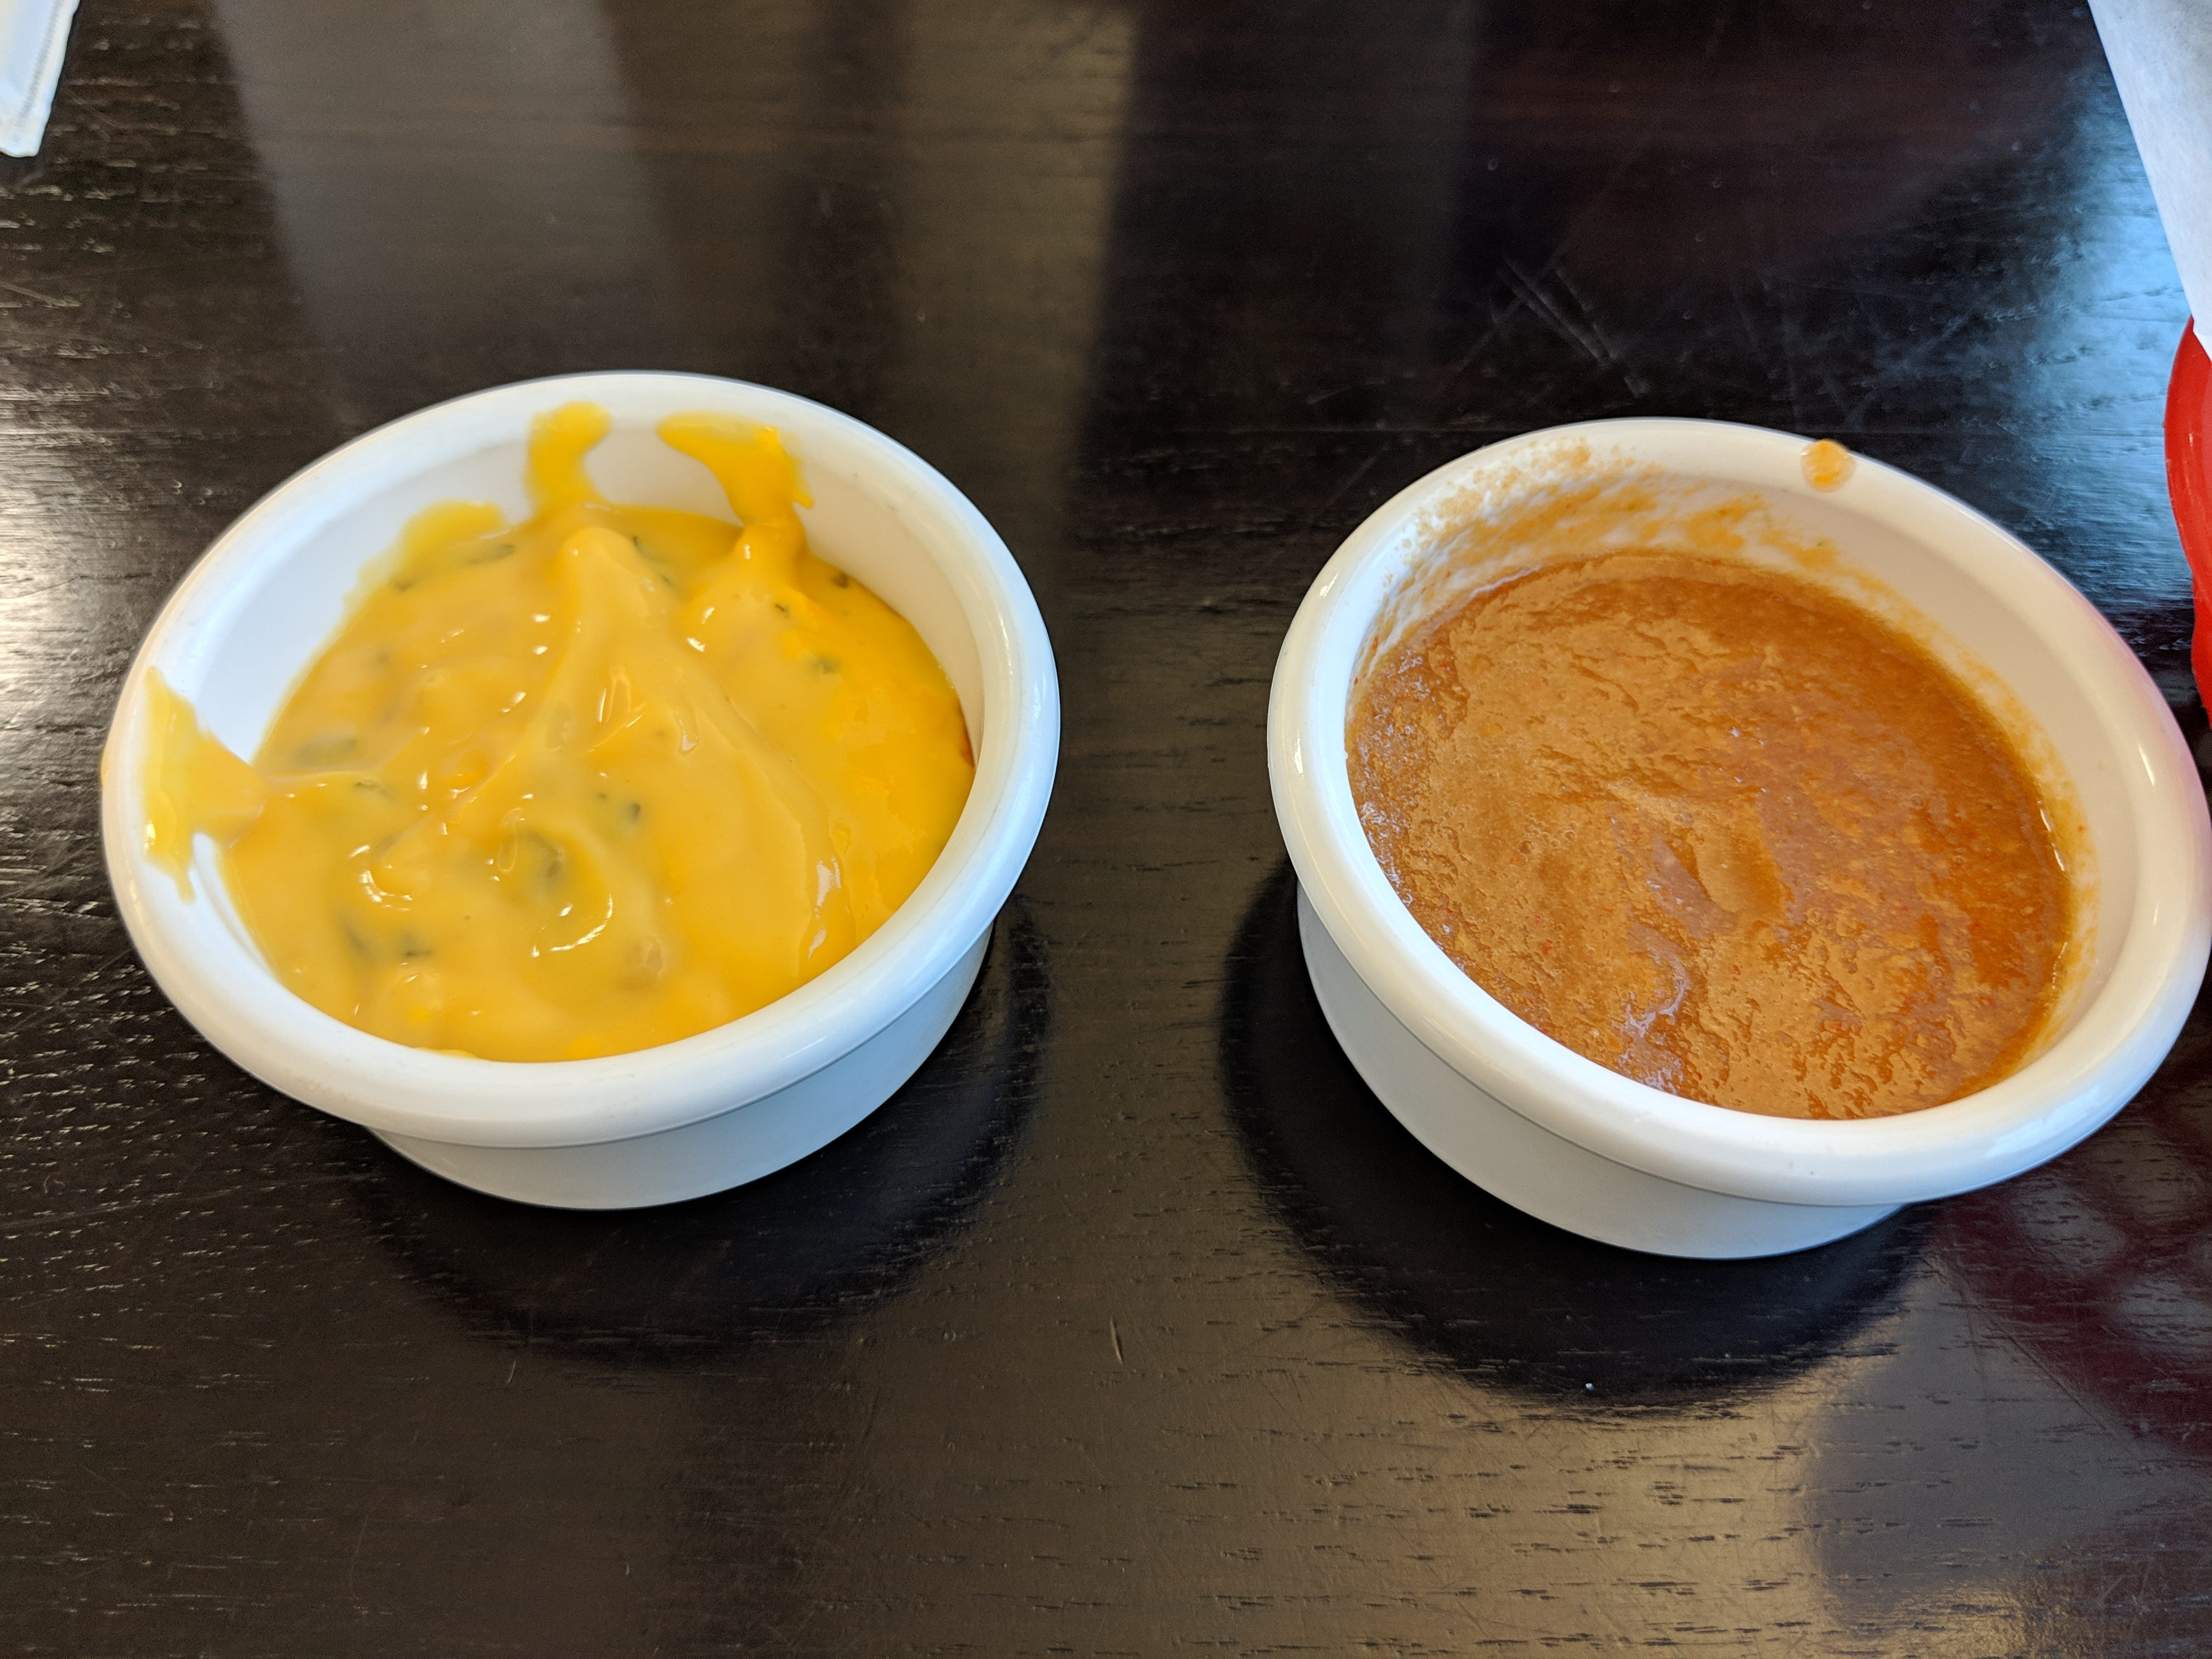 The queso and salsa served with the tortilla chips at Emanuel #3 Salvadorian and Mexican Restaurant at 902 Board St.